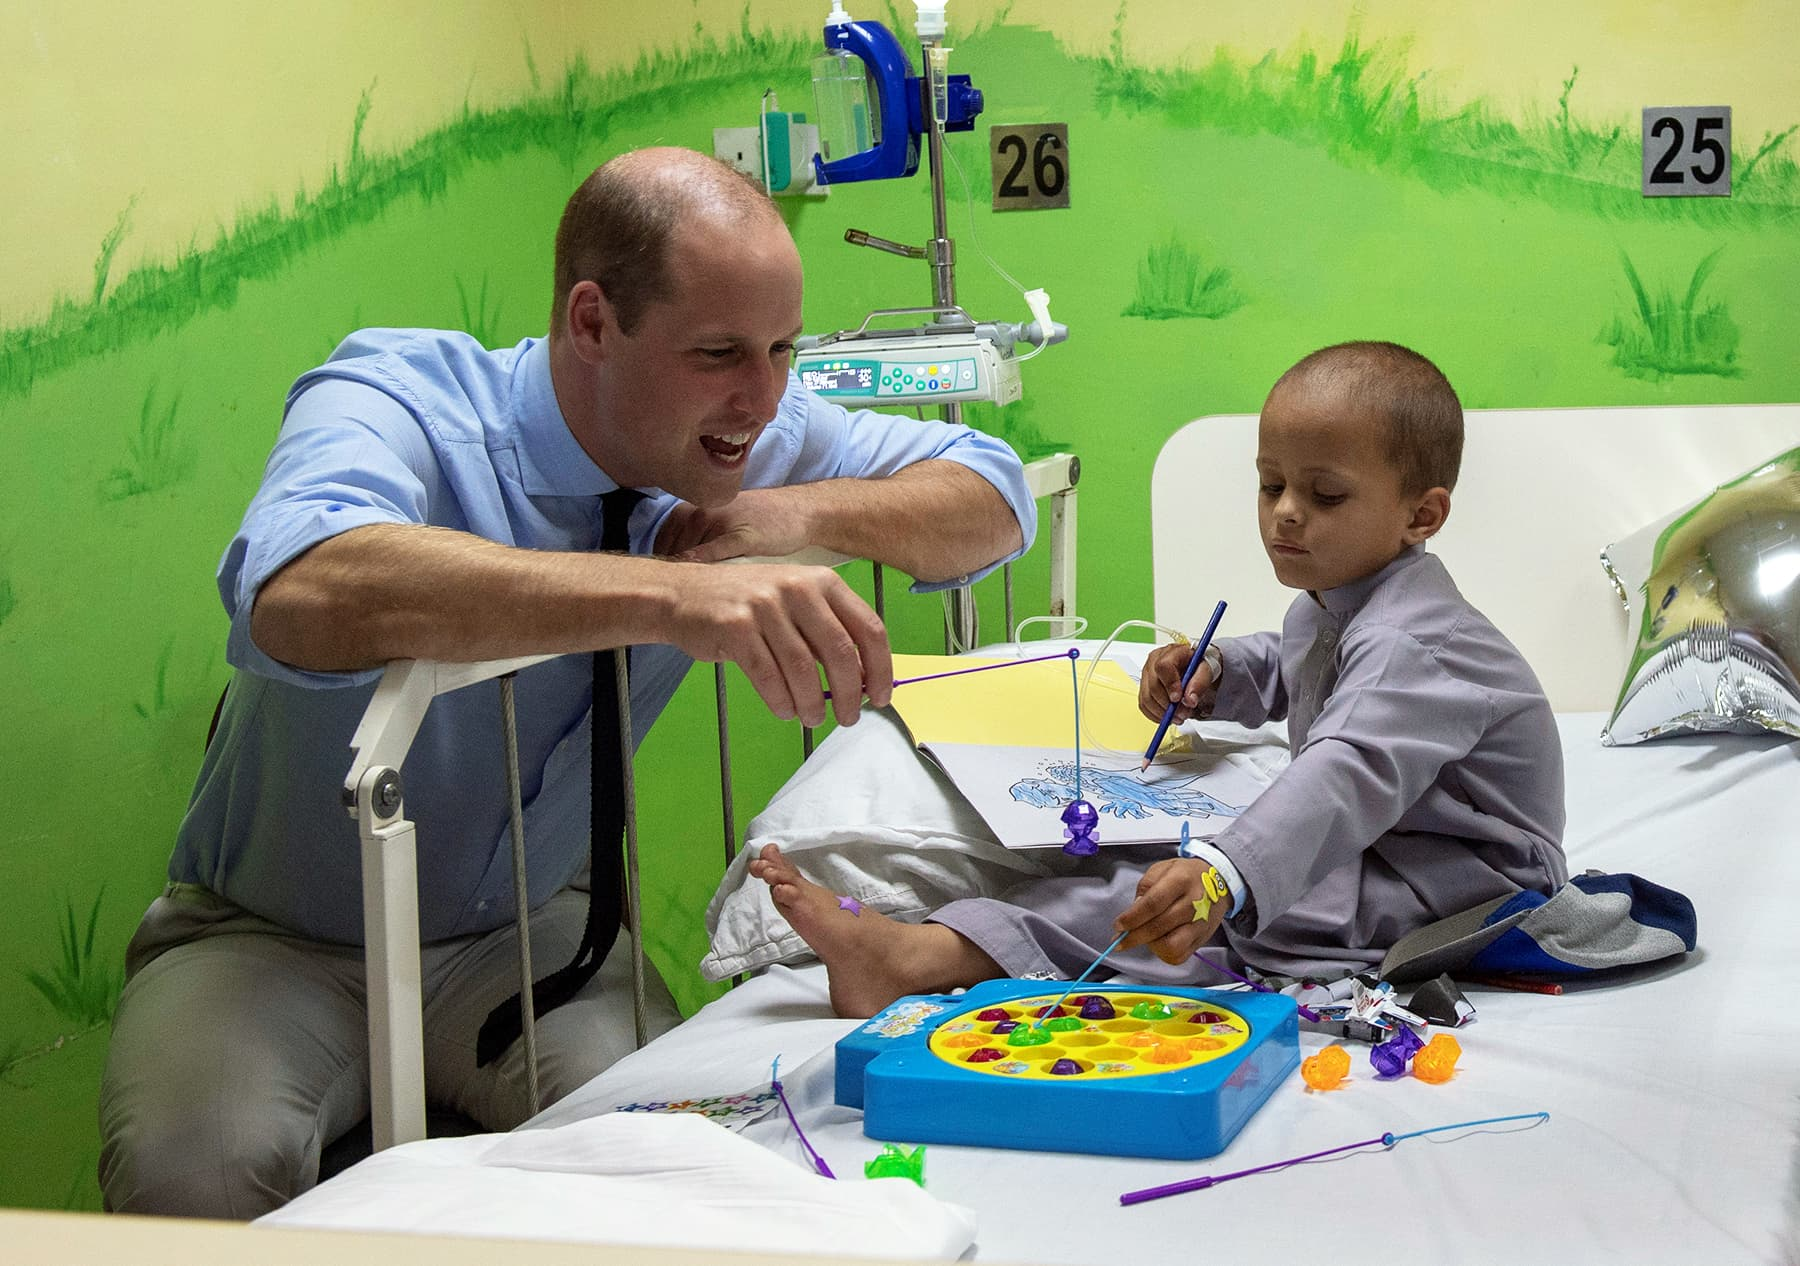 William plays with a young cancer patient at the Shaukat Khanum Memorial Cancer Hospital in Lahore, October 17. — Reuters